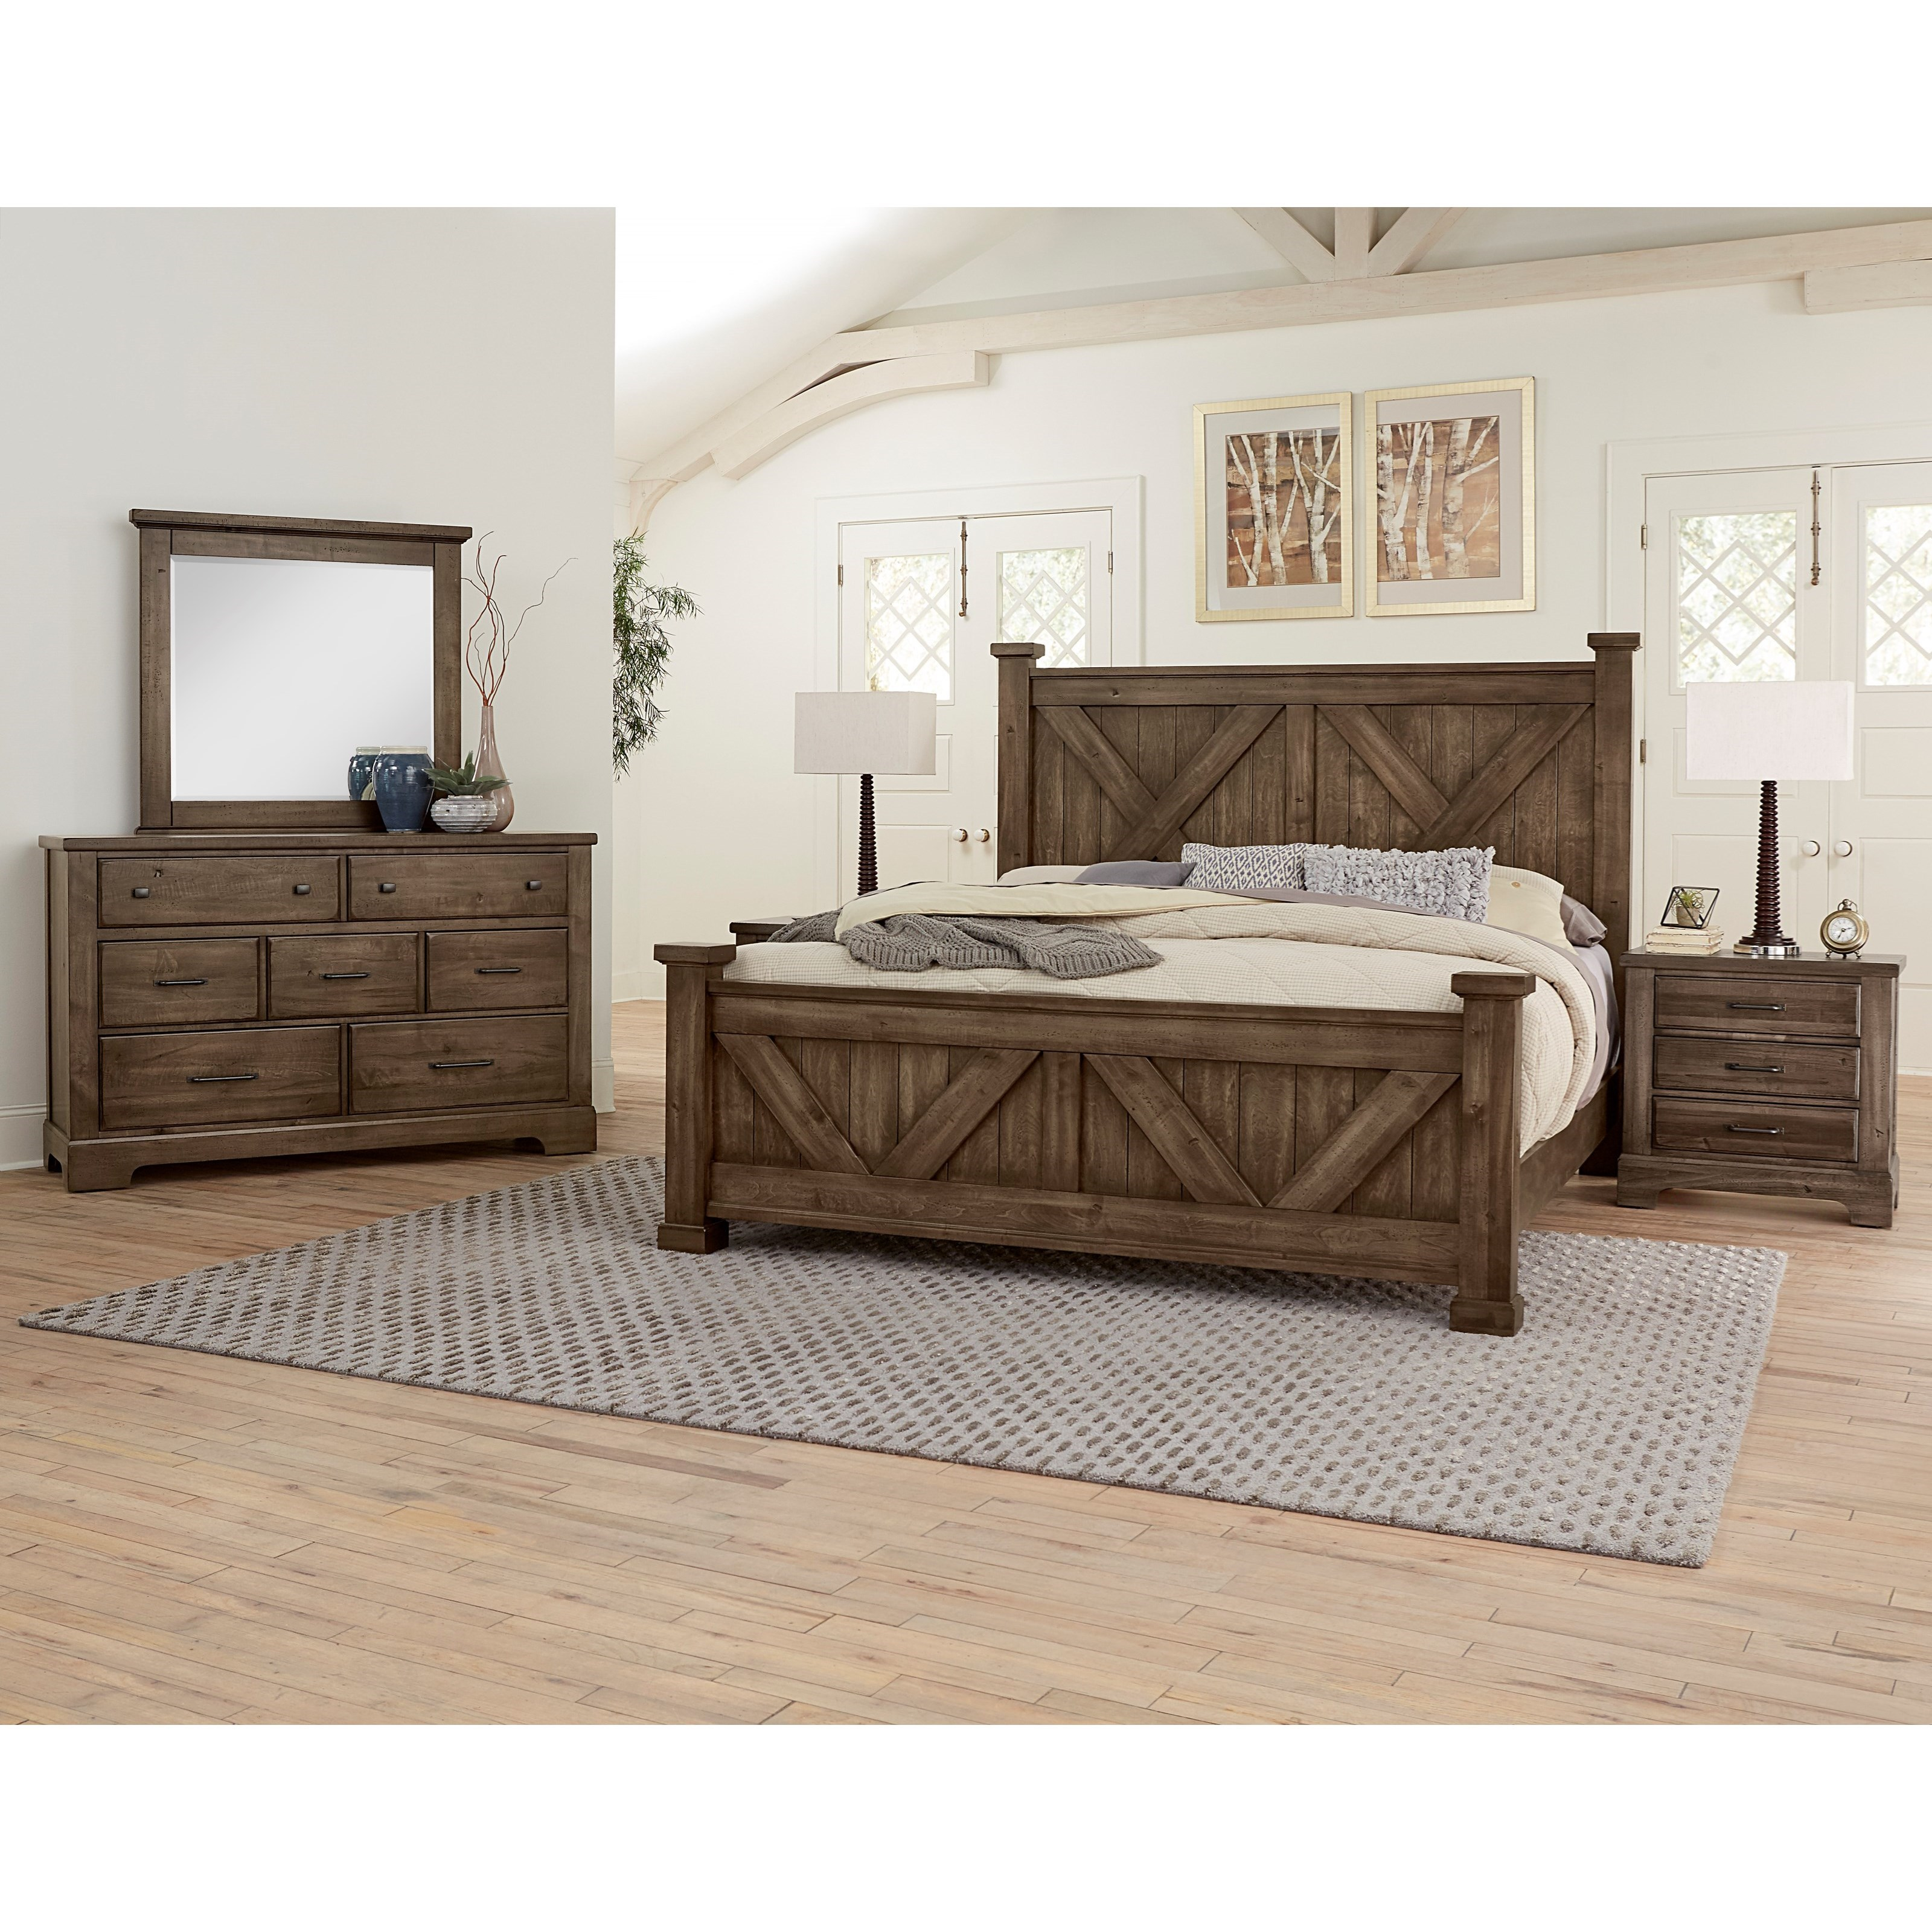 Cool Rustic Queen Bedroom Group by Artisan & Post at Esprit Decor Home Furnishings